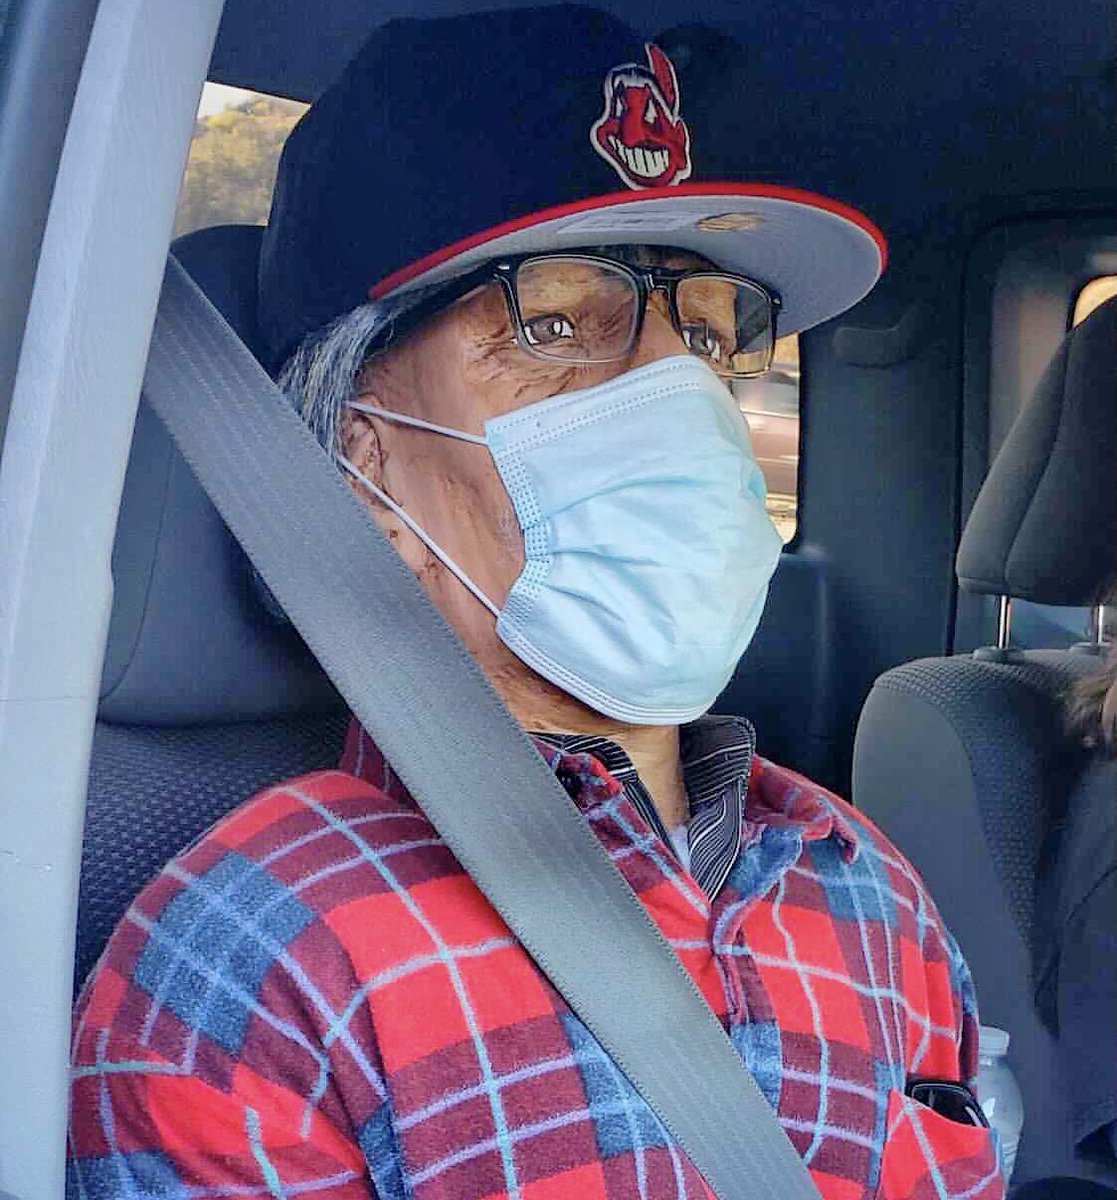 PHOTO: CHP nabs fake mannequin used in carpool violation.